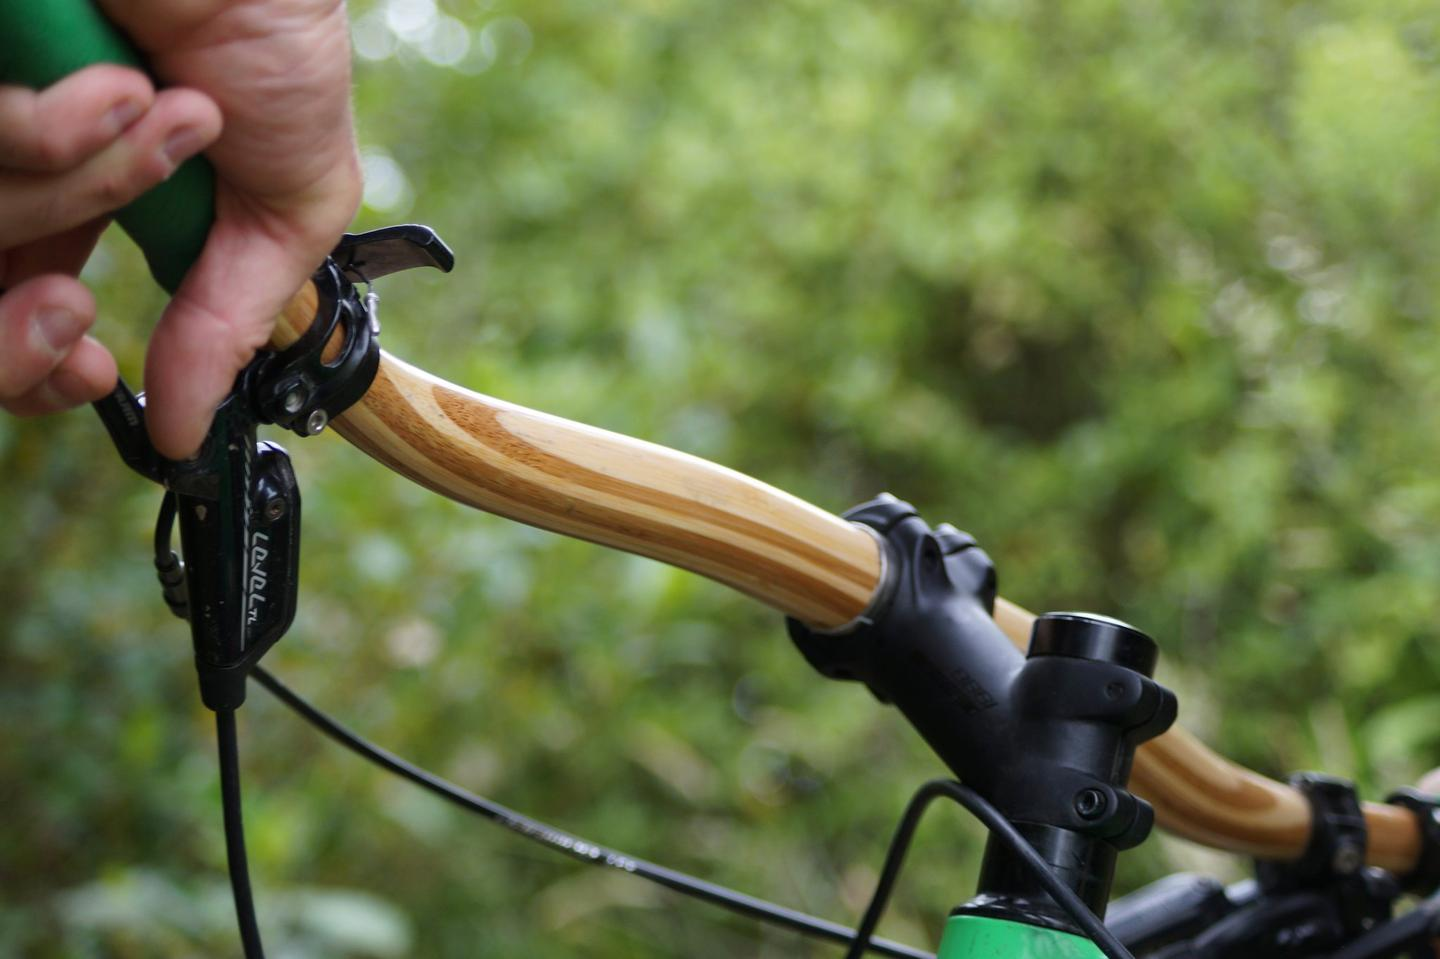 The Gump is made almost entirely of laminated layers of bamboo, with a 31.8-mm carbon fiber sleeve around the middle where it joins the handlebar stem